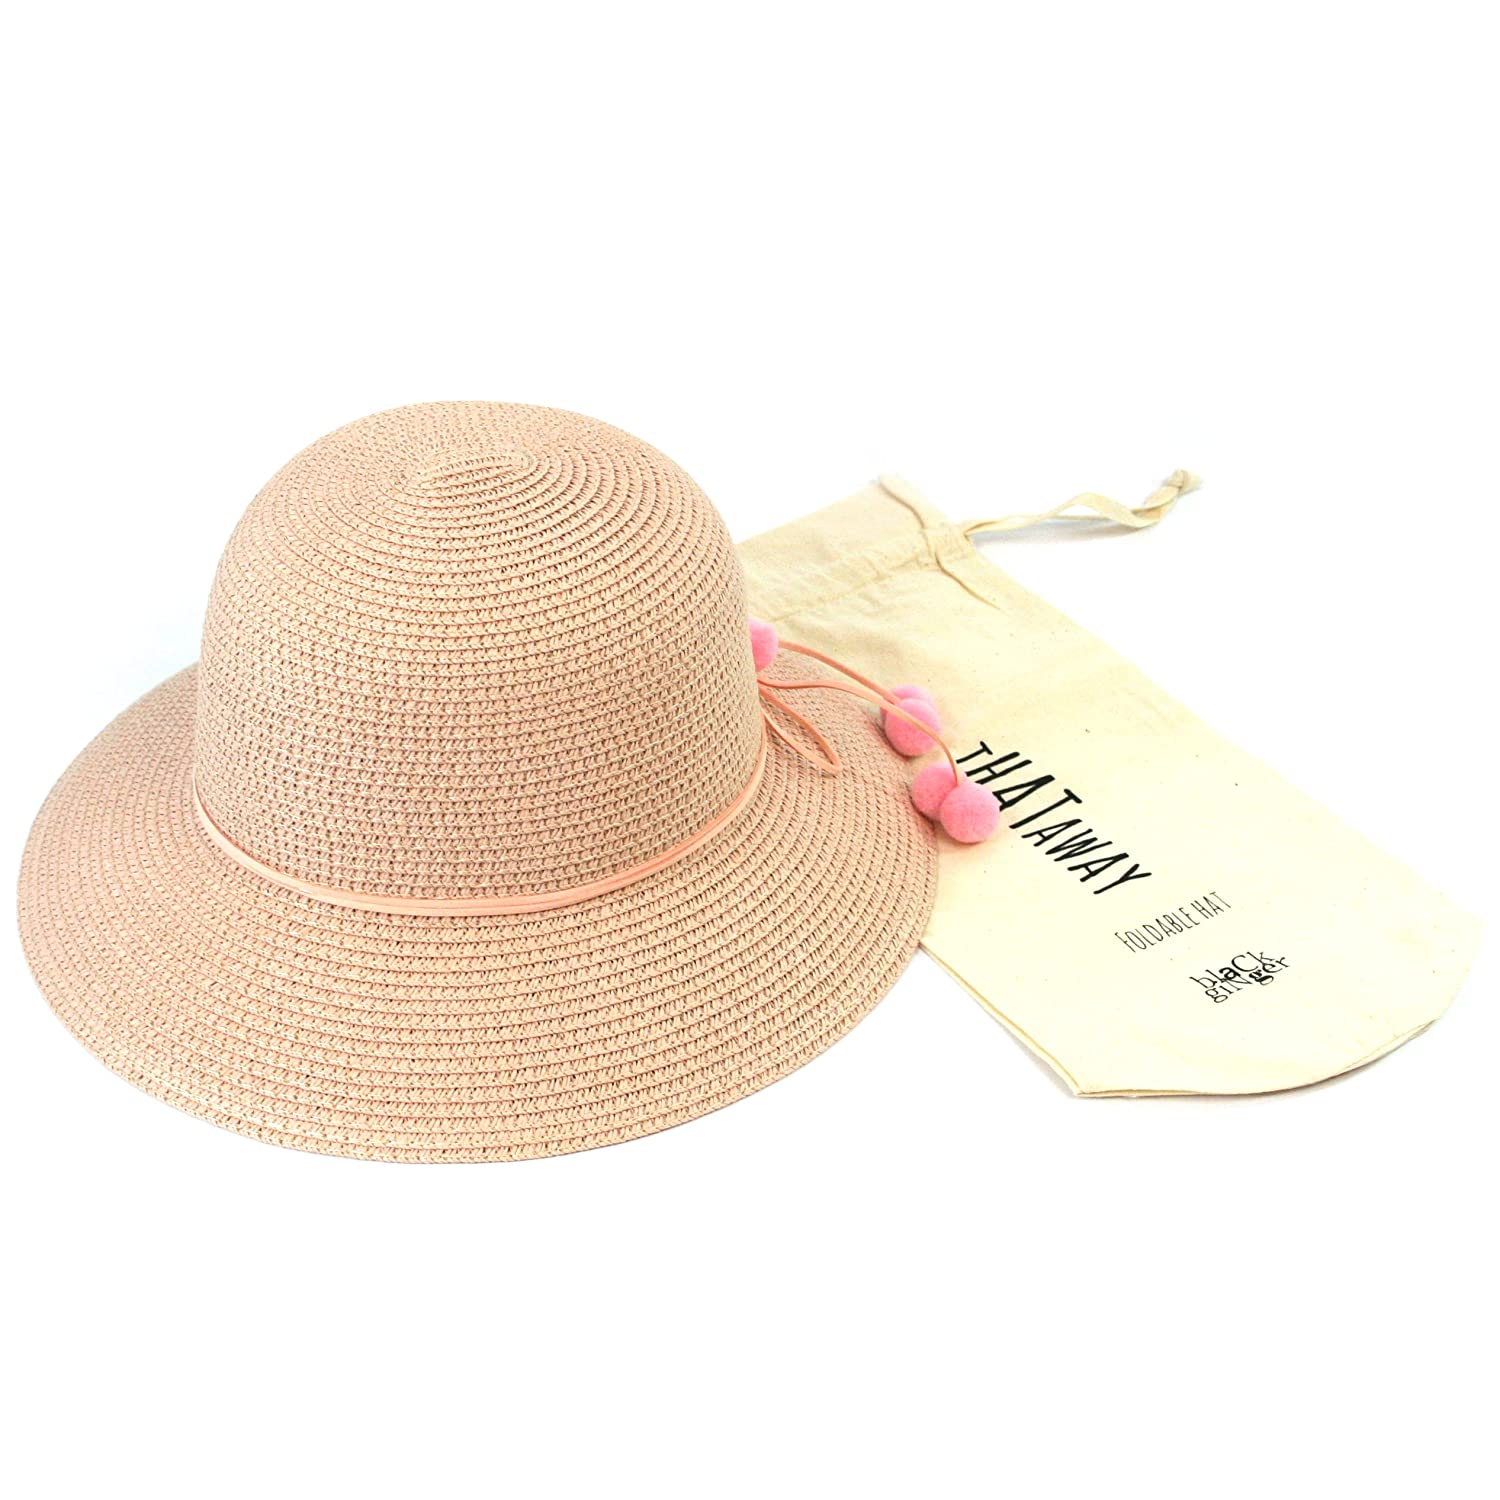 Black Ginger Folding Sun Hat with Pompom Decorations. Straw Hat That can be Folded into its Travel Bag. Ladies. Adjustable Size.